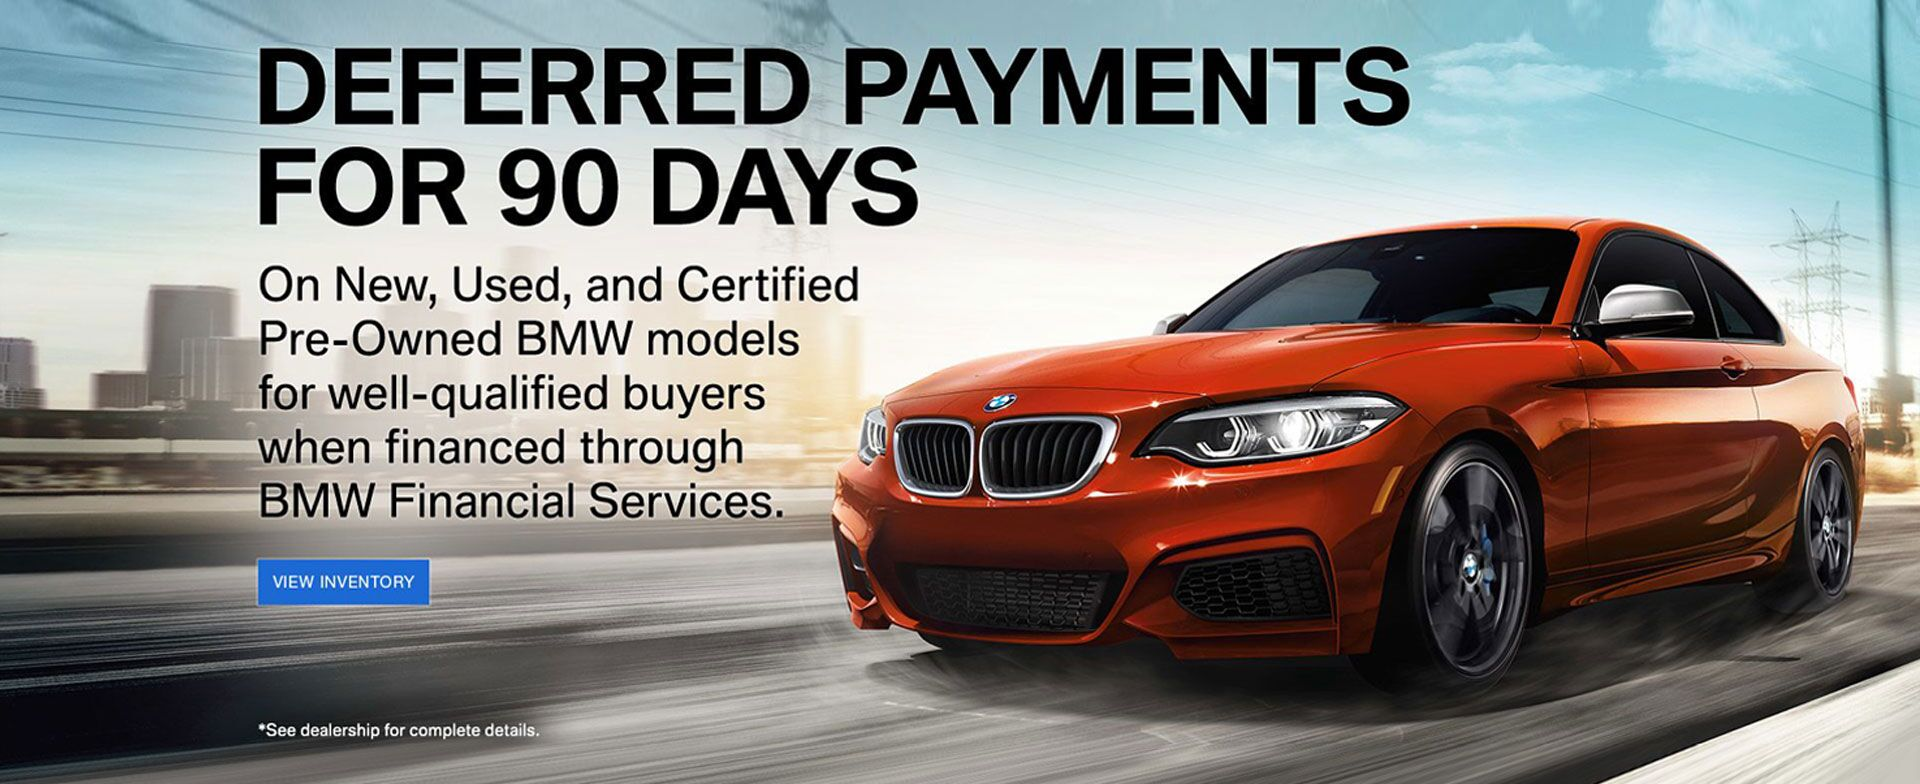 Deferred Payments for 90 Days